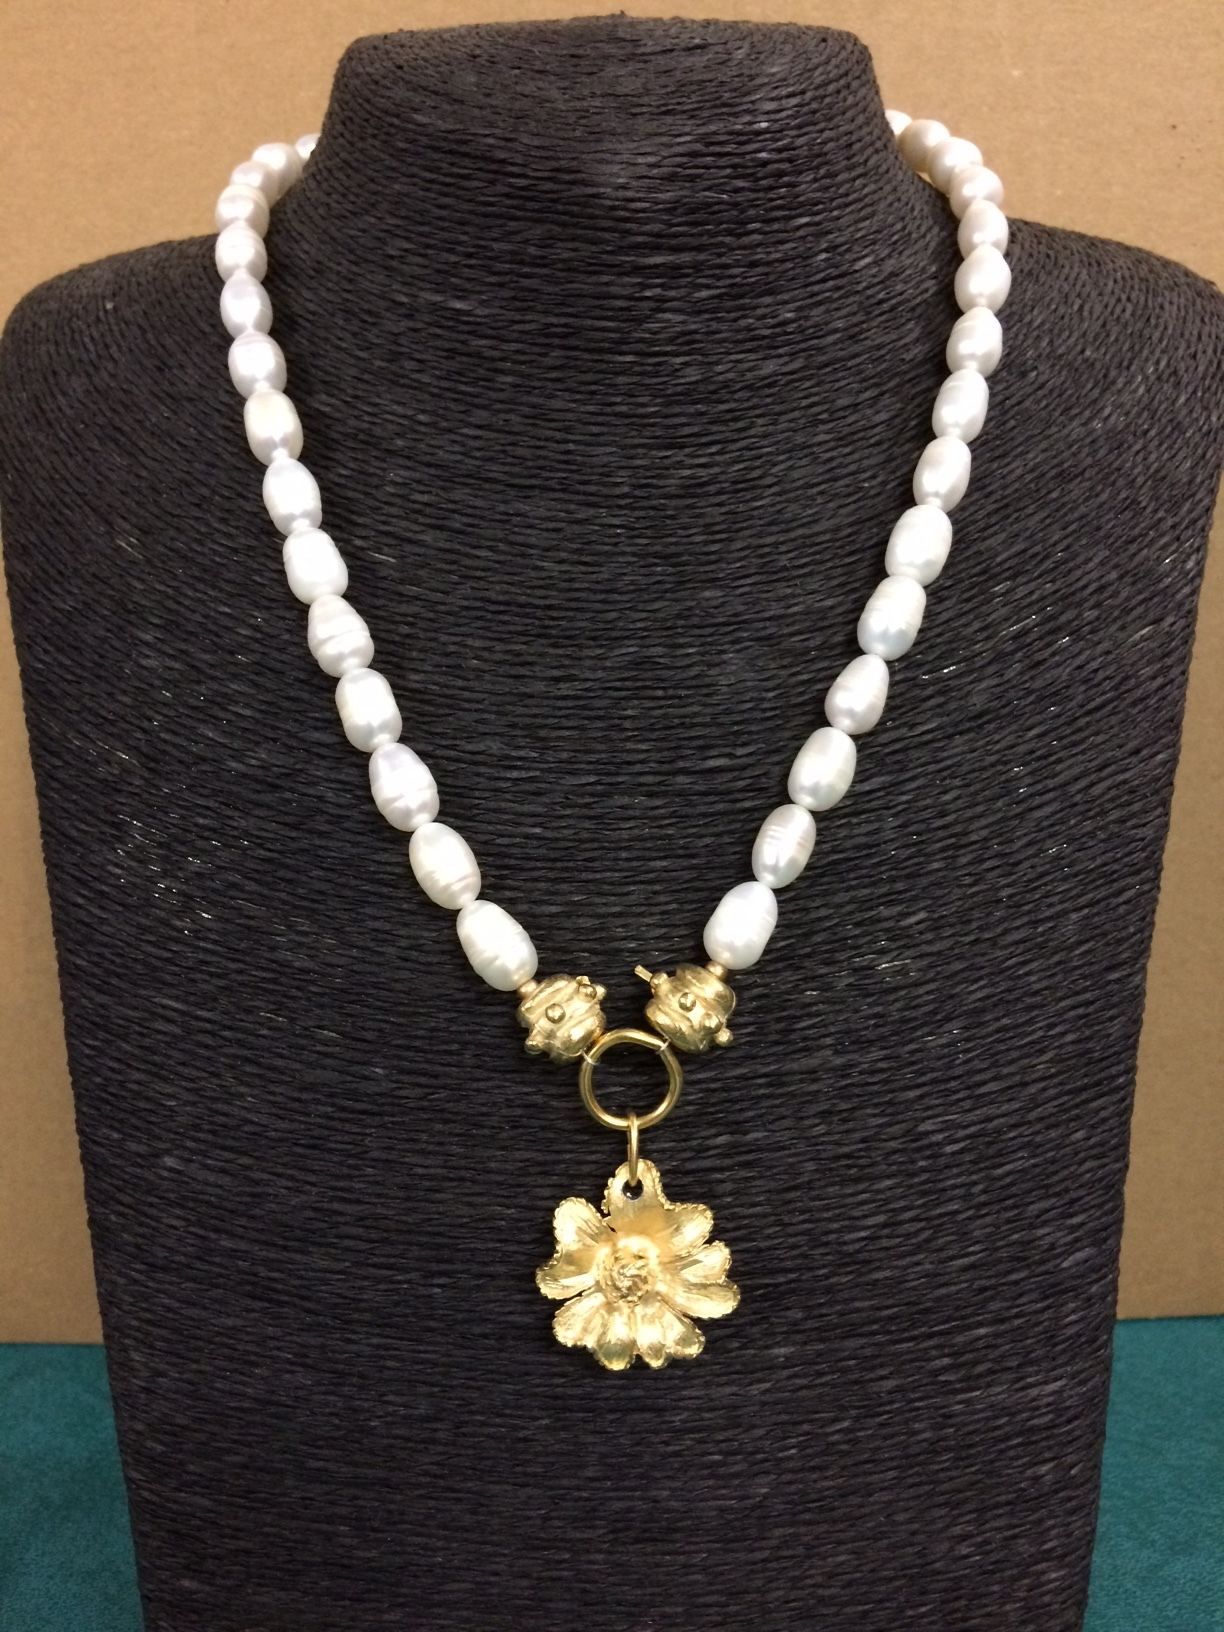 susan-shaw-necklace-pearls-with-flower